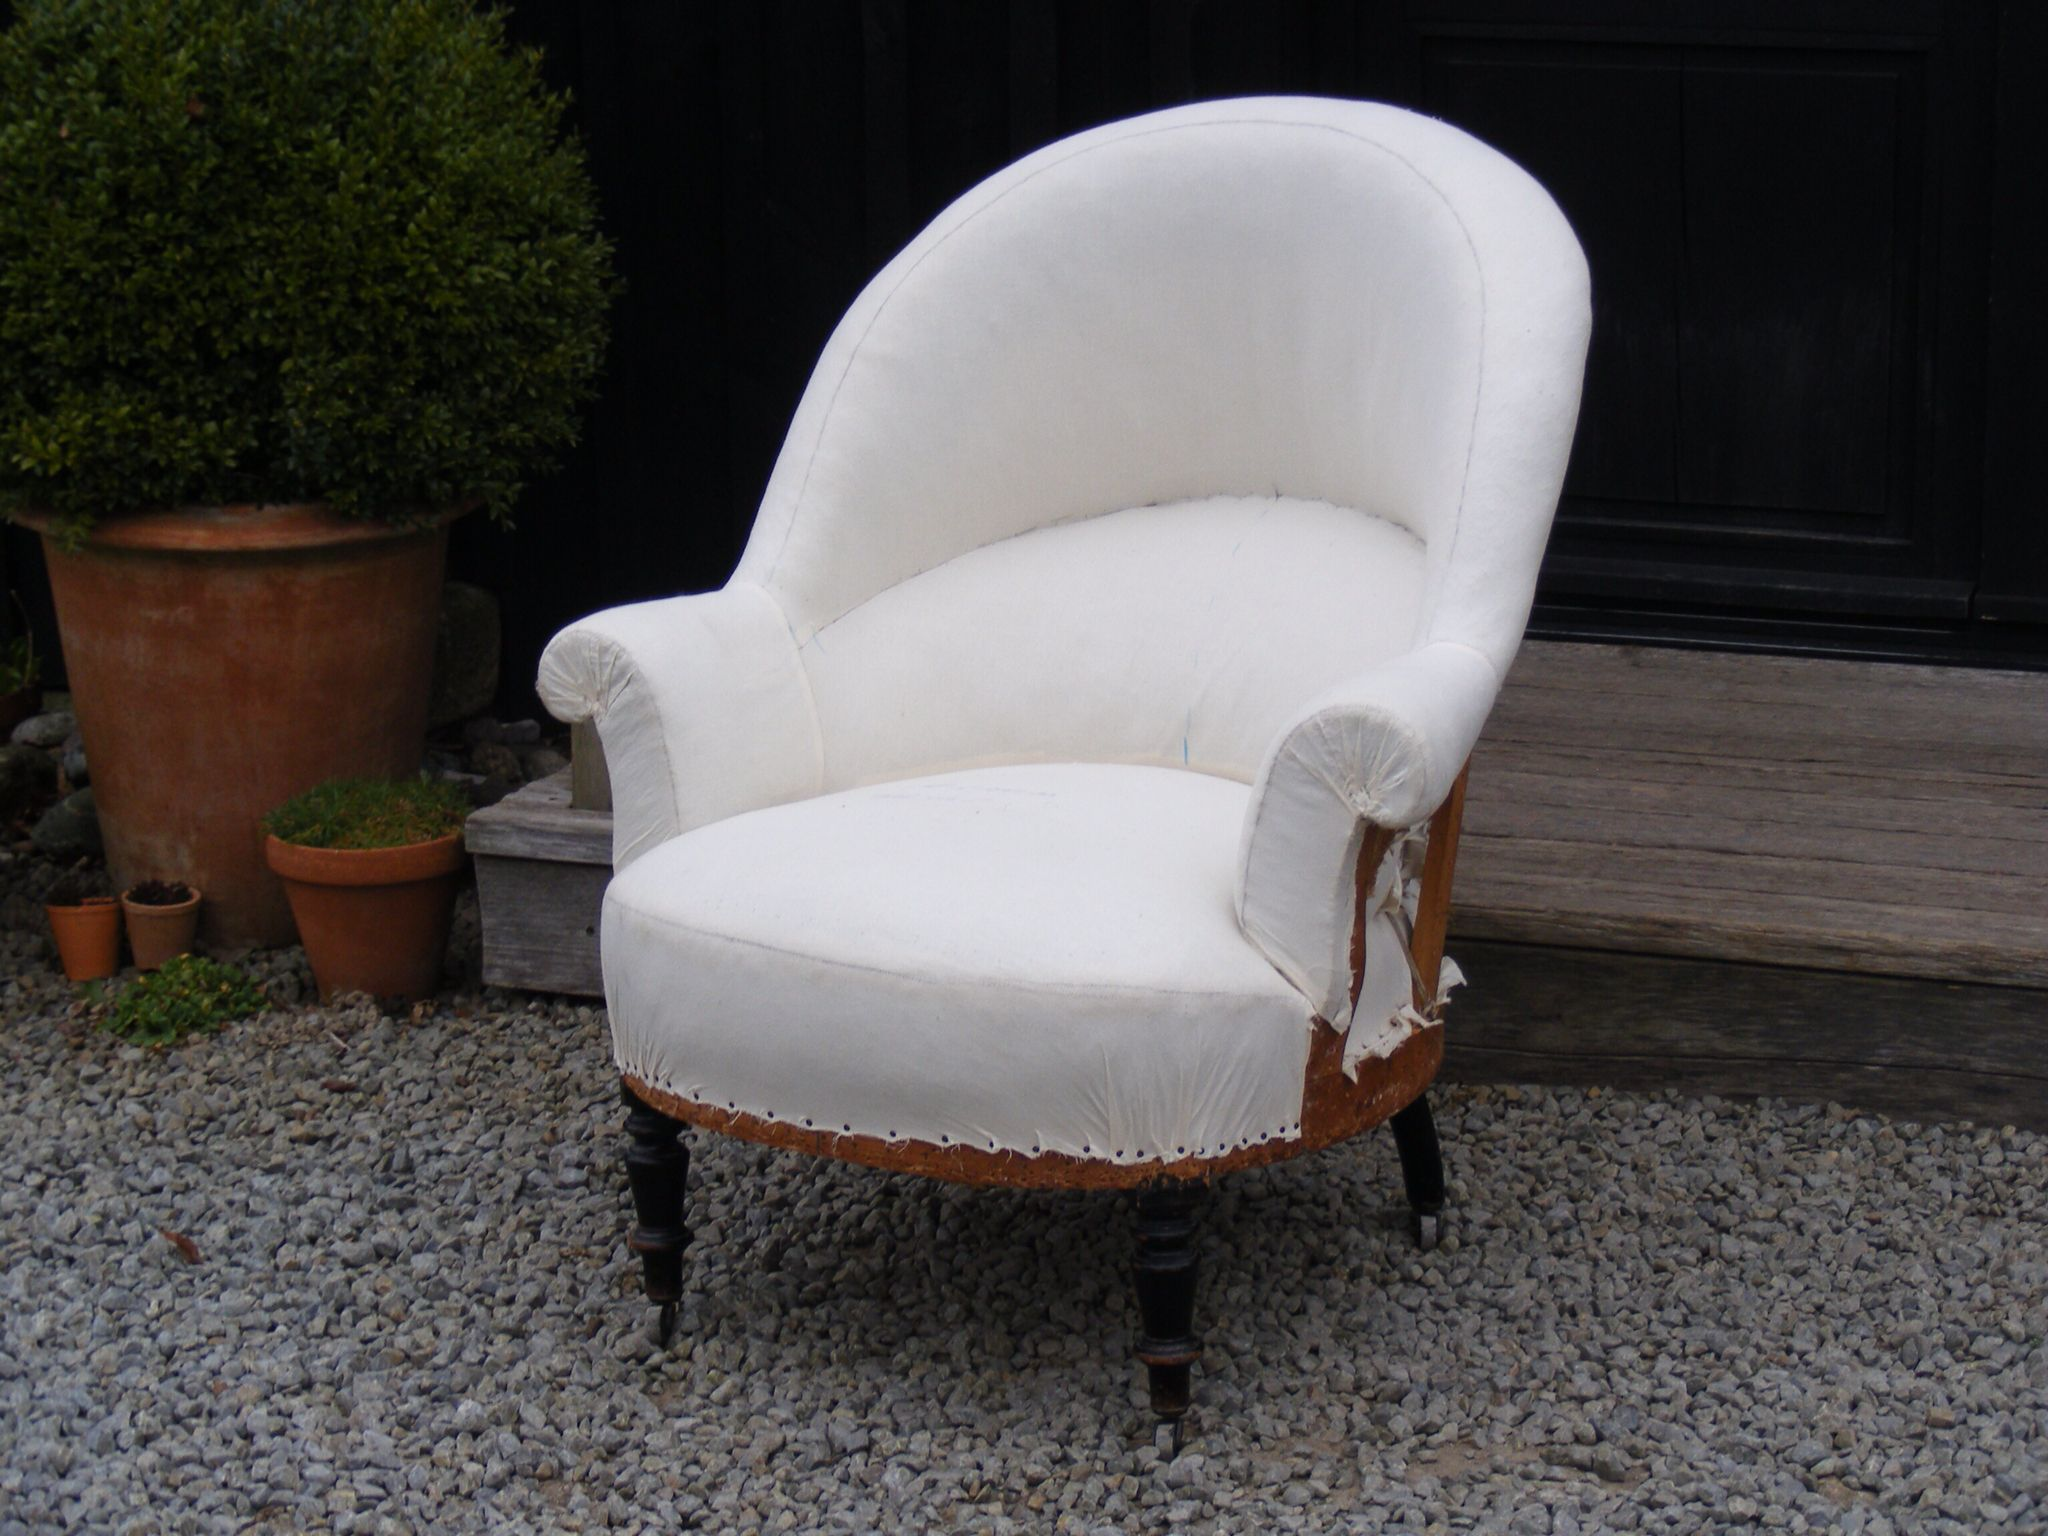 Beautiful Large Tub Chair Covered In Calico With Casters. Height: 96cm Width: 84cm  Depth